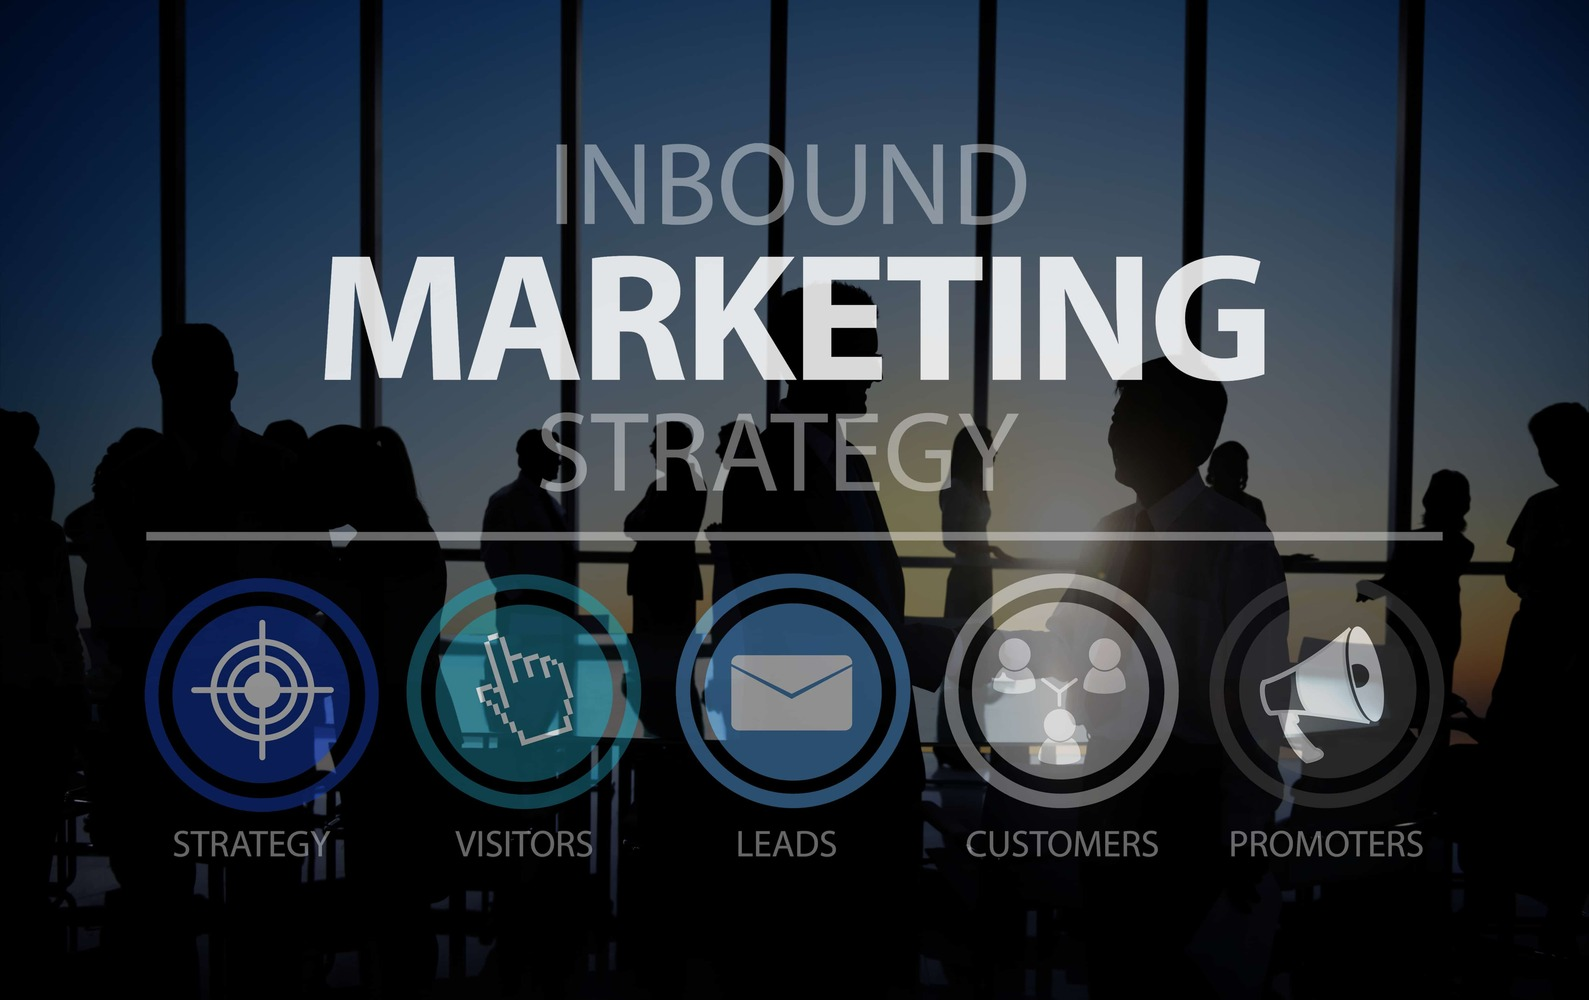 inboundmarketing.redimensionado